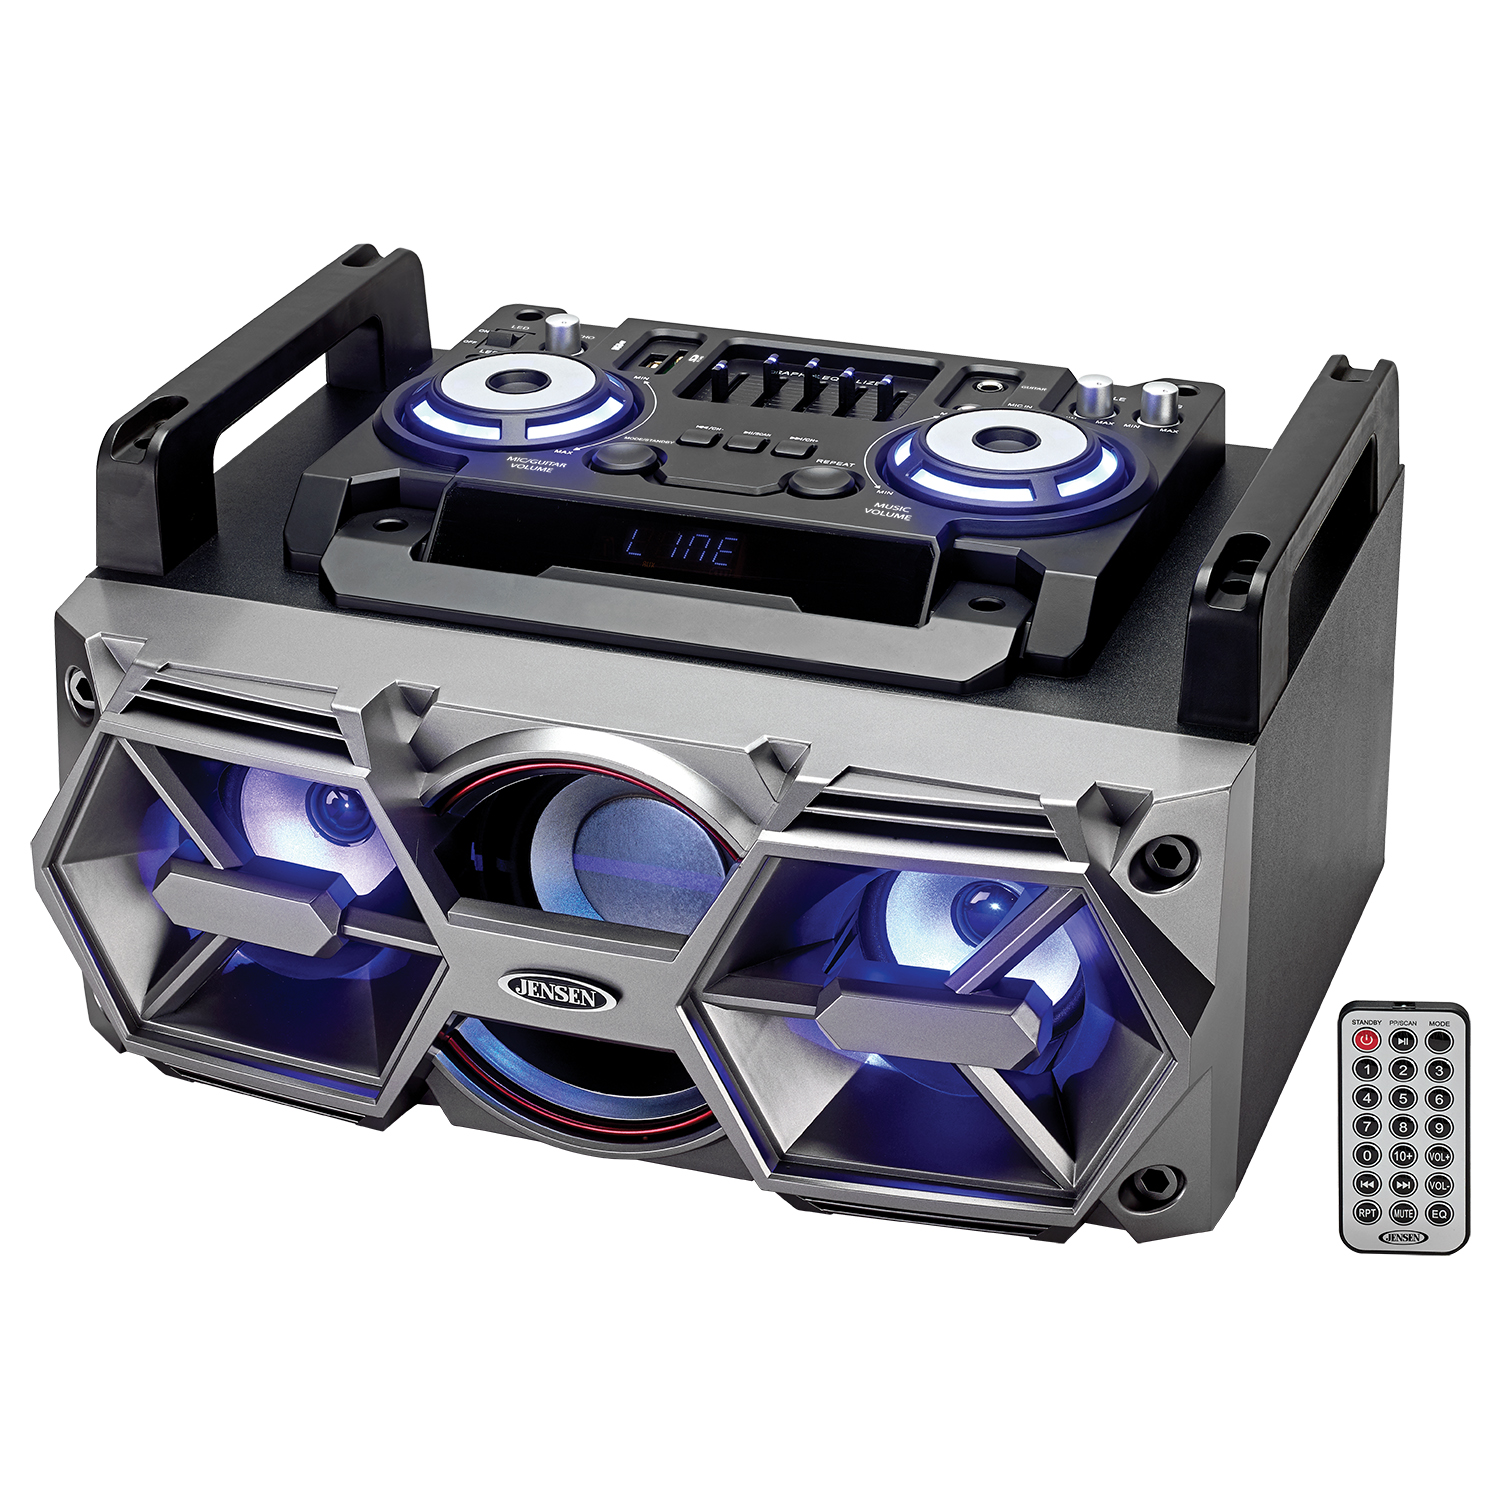 Jensen All-In-One Bluetooth Wireless Radio Mega Bass Stereo Boombox